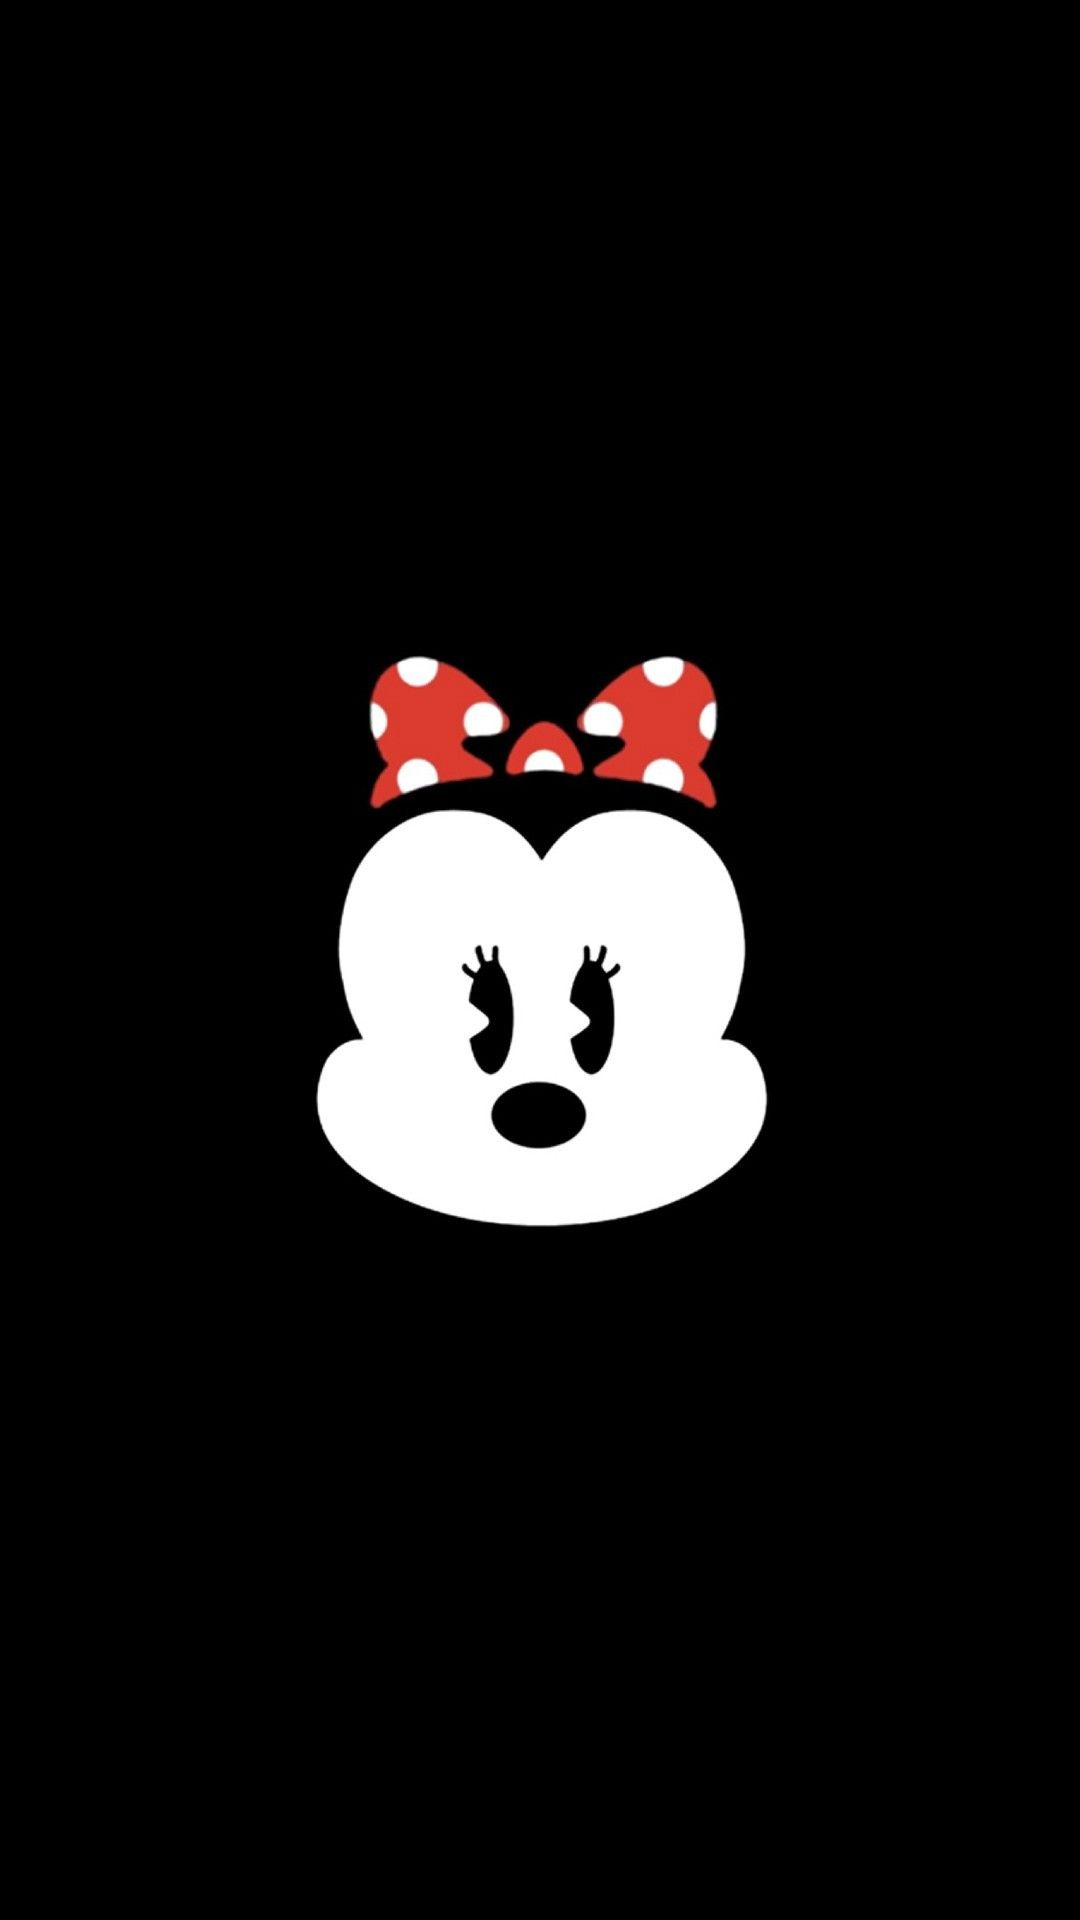 Pin by harshita gautam on wallpapers Mickey mouse